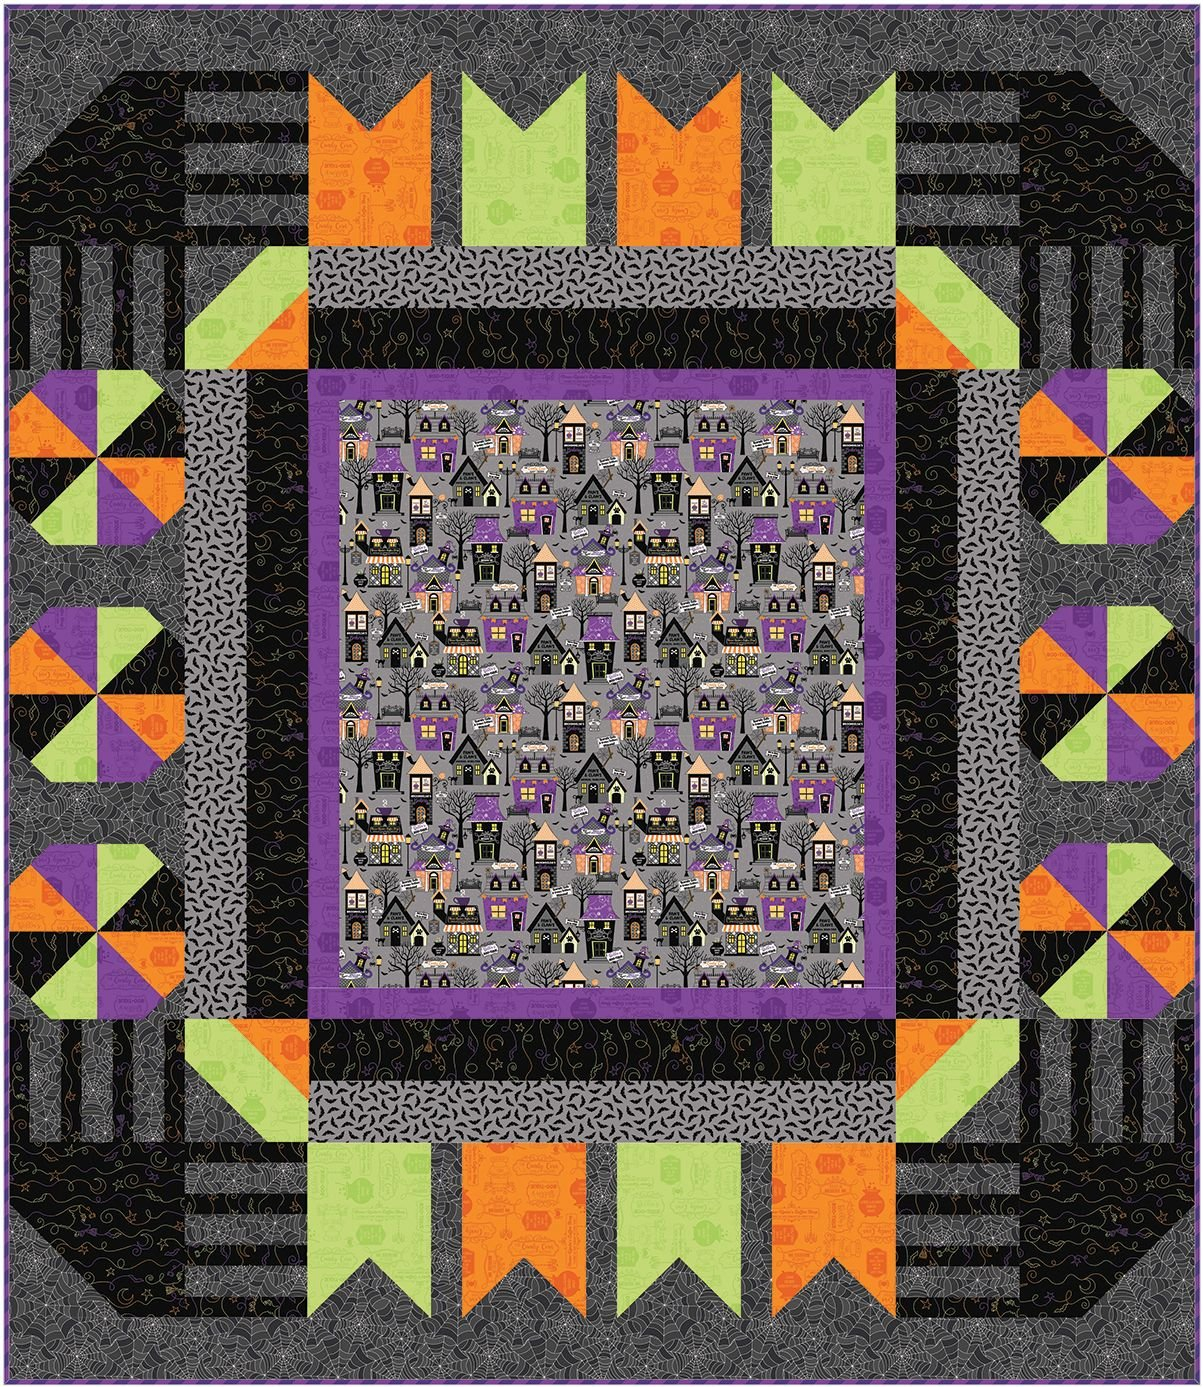 EESC-KITMASTSQ - HOMETOWN HALLOWEEN - TOWN SQUARE QUILT KIT 57.5 x 66 - ARRIVING IN JULY 2021